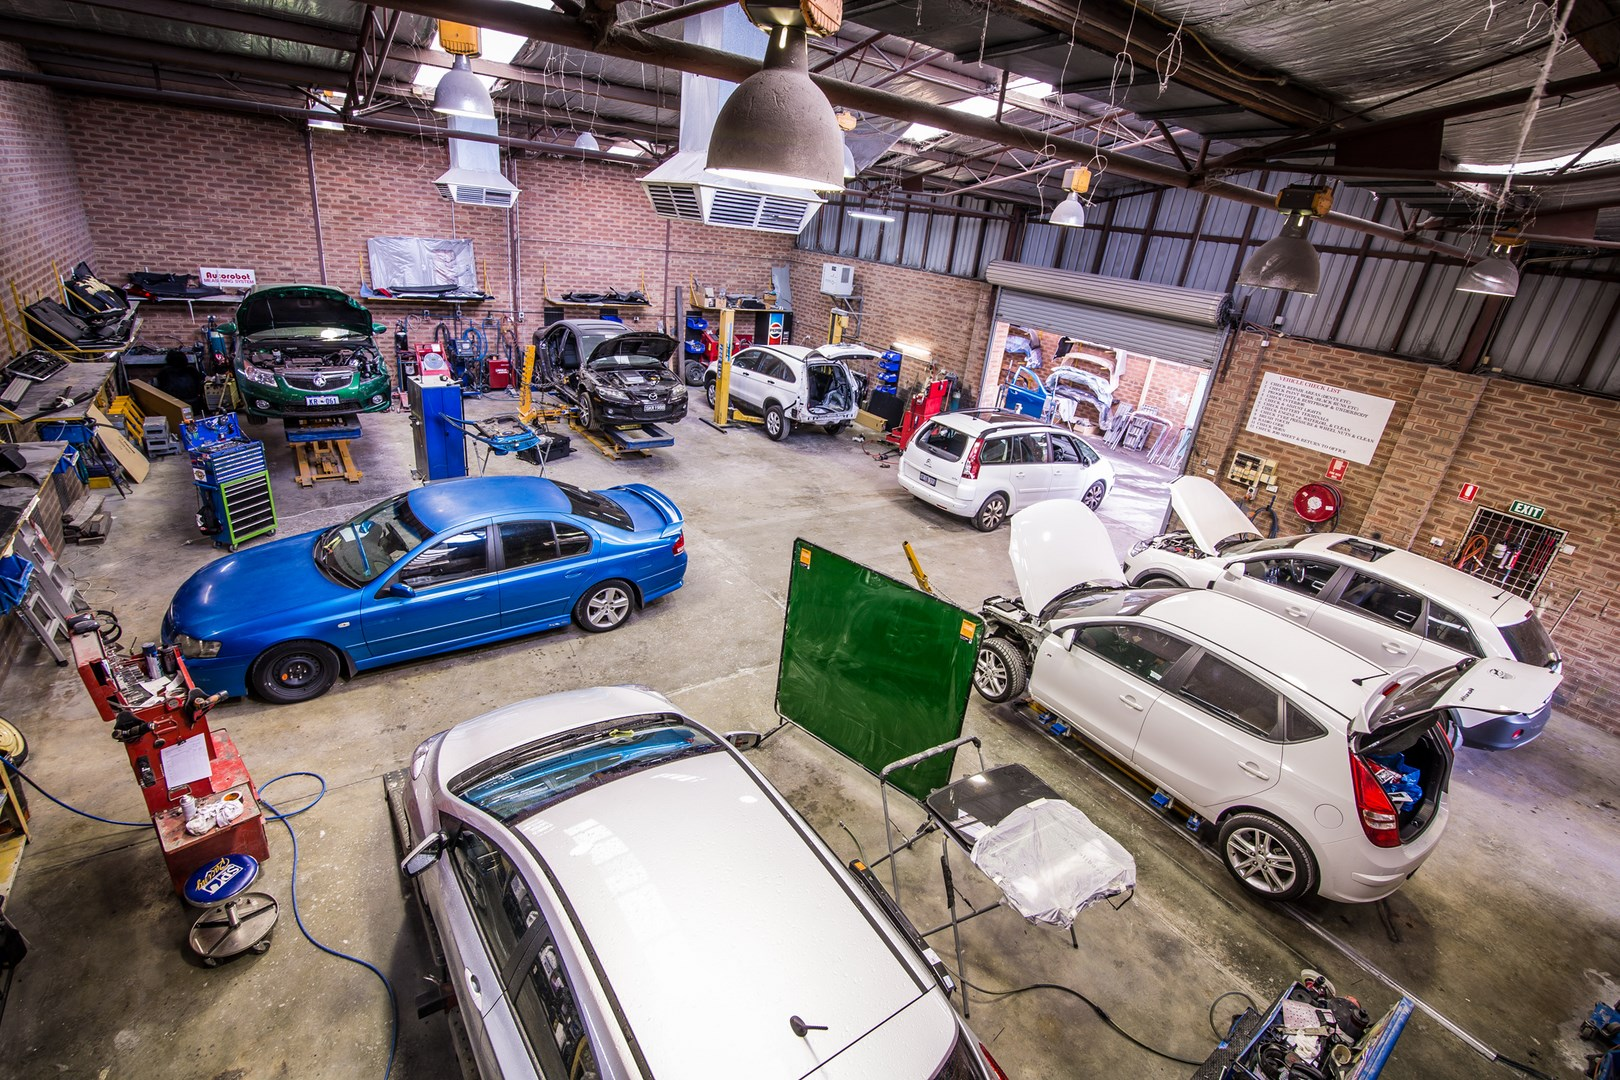 Design car repair workshop - However Minor Smash Repairs Brisbane Experts Have A Way Of Repairing Hopeless Dents That You Wouldn T Even Believe They Were There